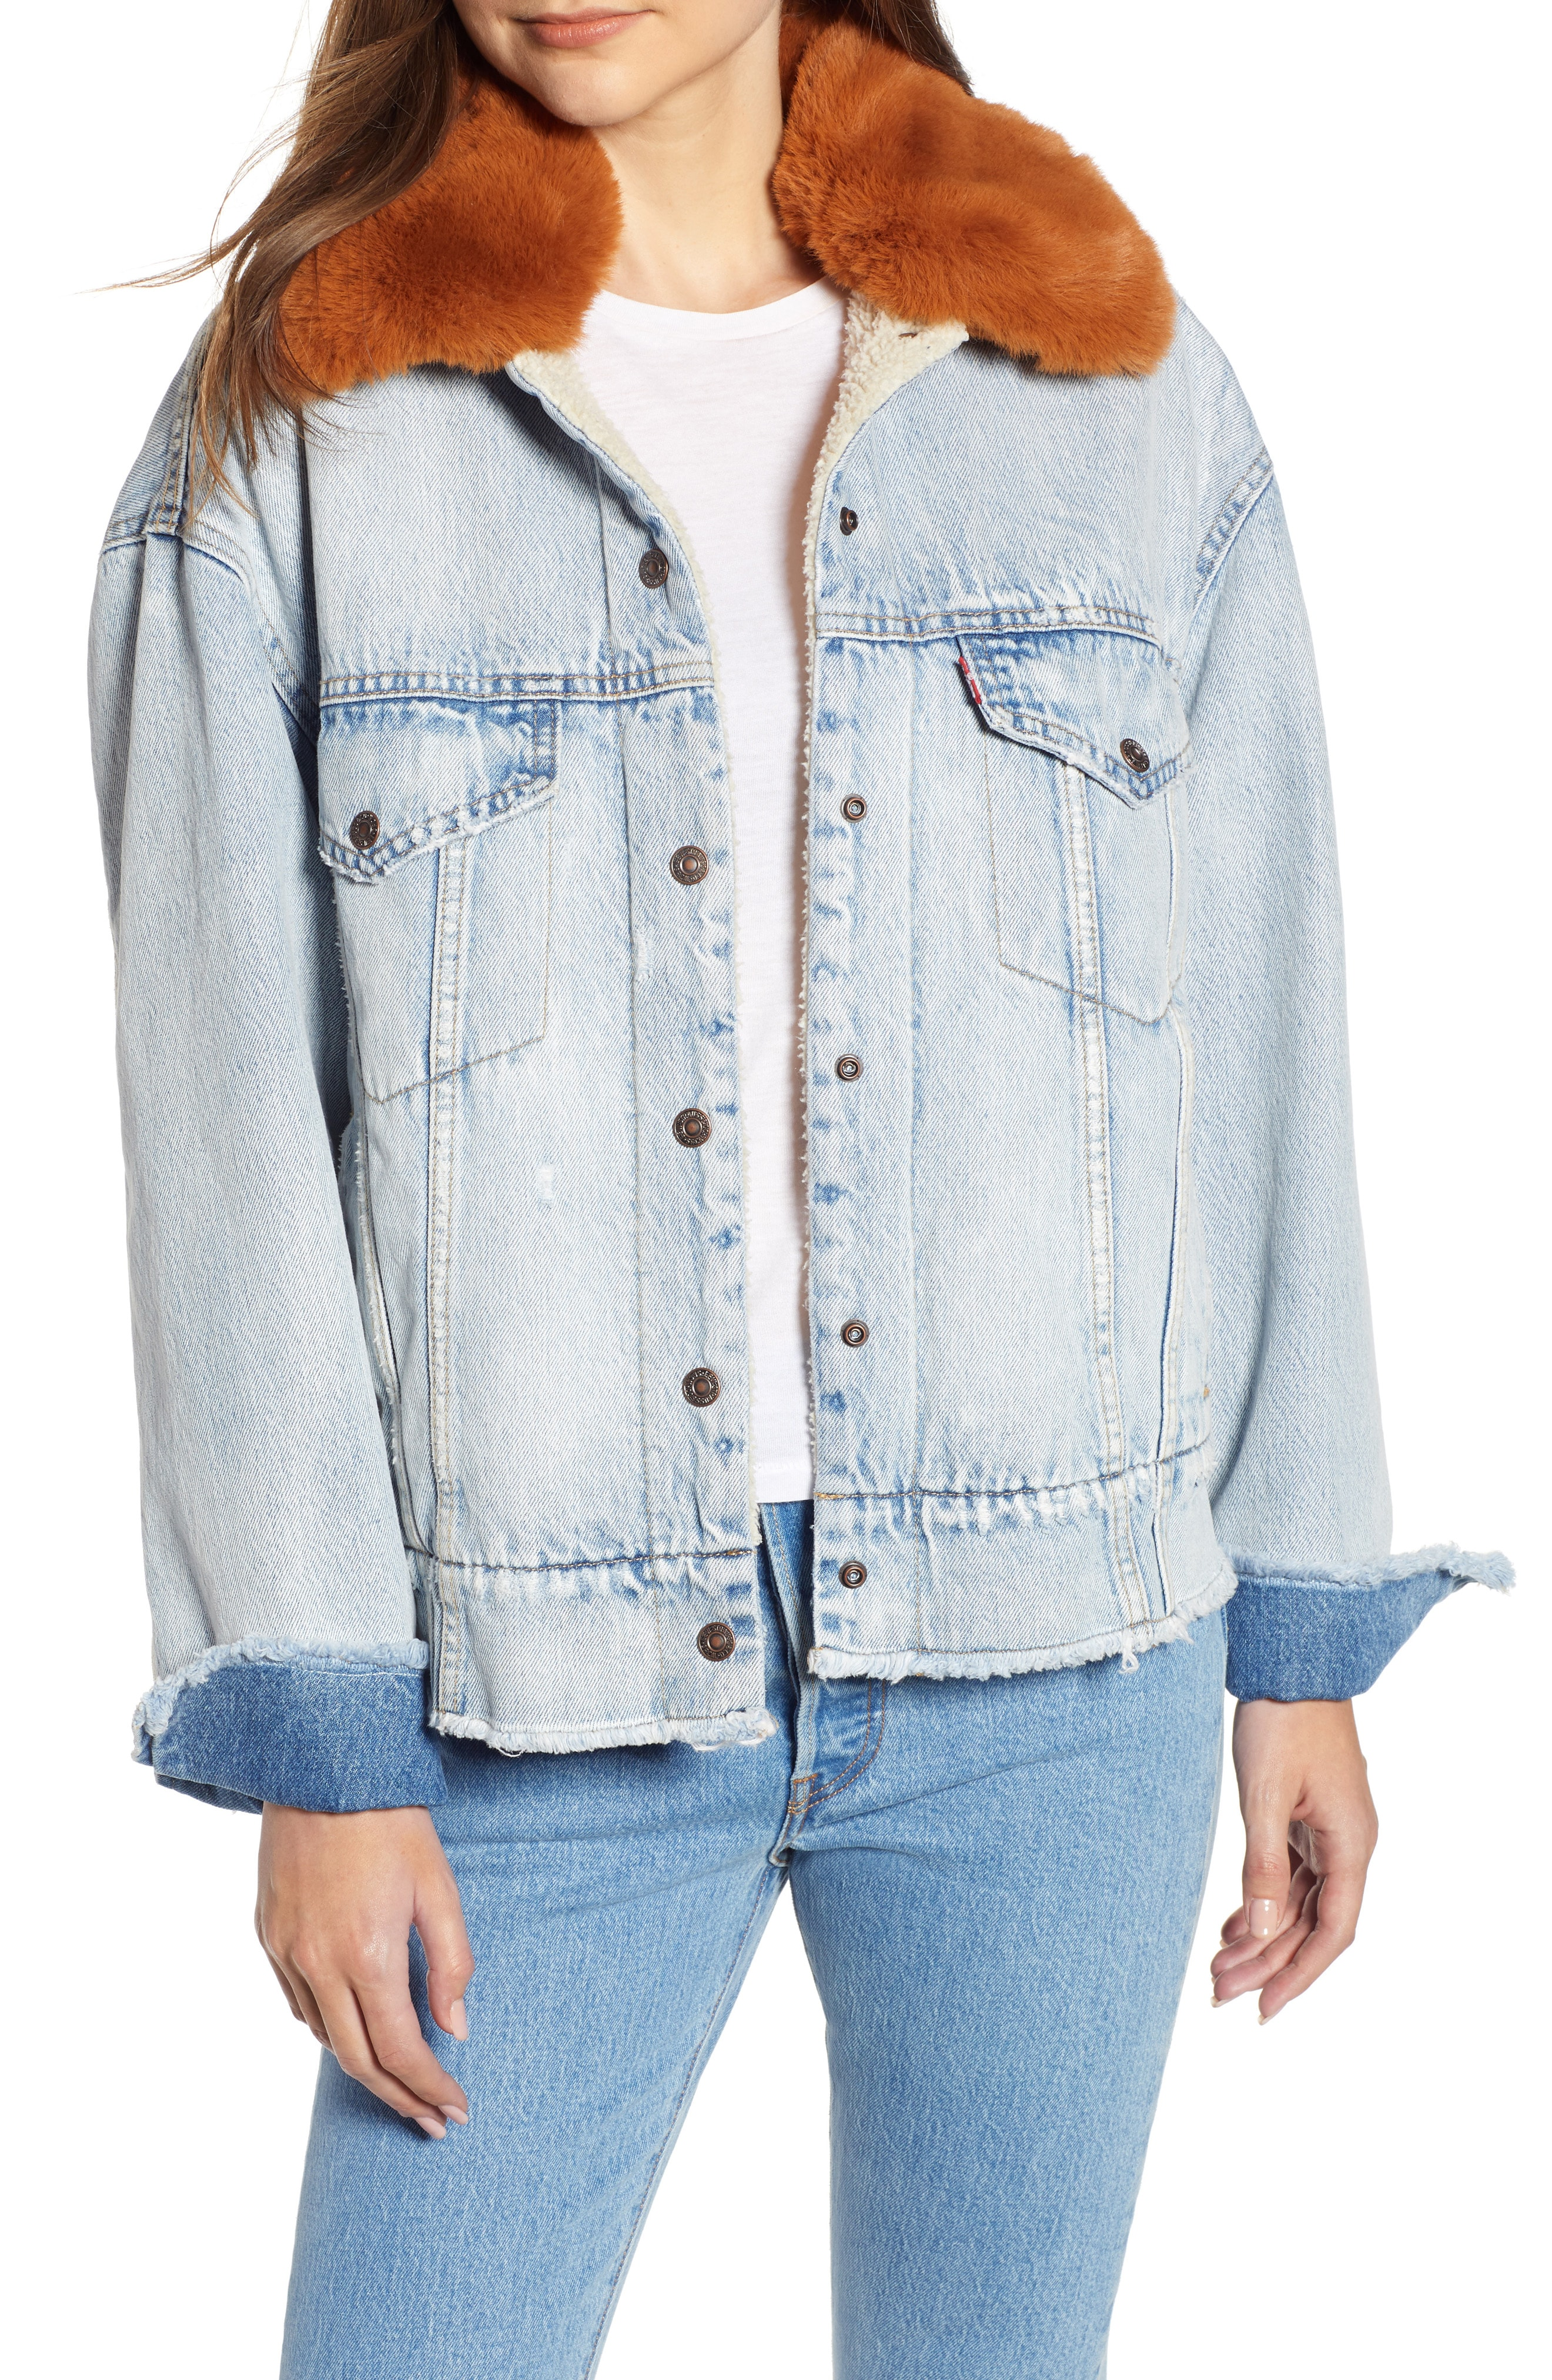 Levi's Oversize Faux Shearling Lined Denim Trucker Jacket with Removable Faux Fur Collar